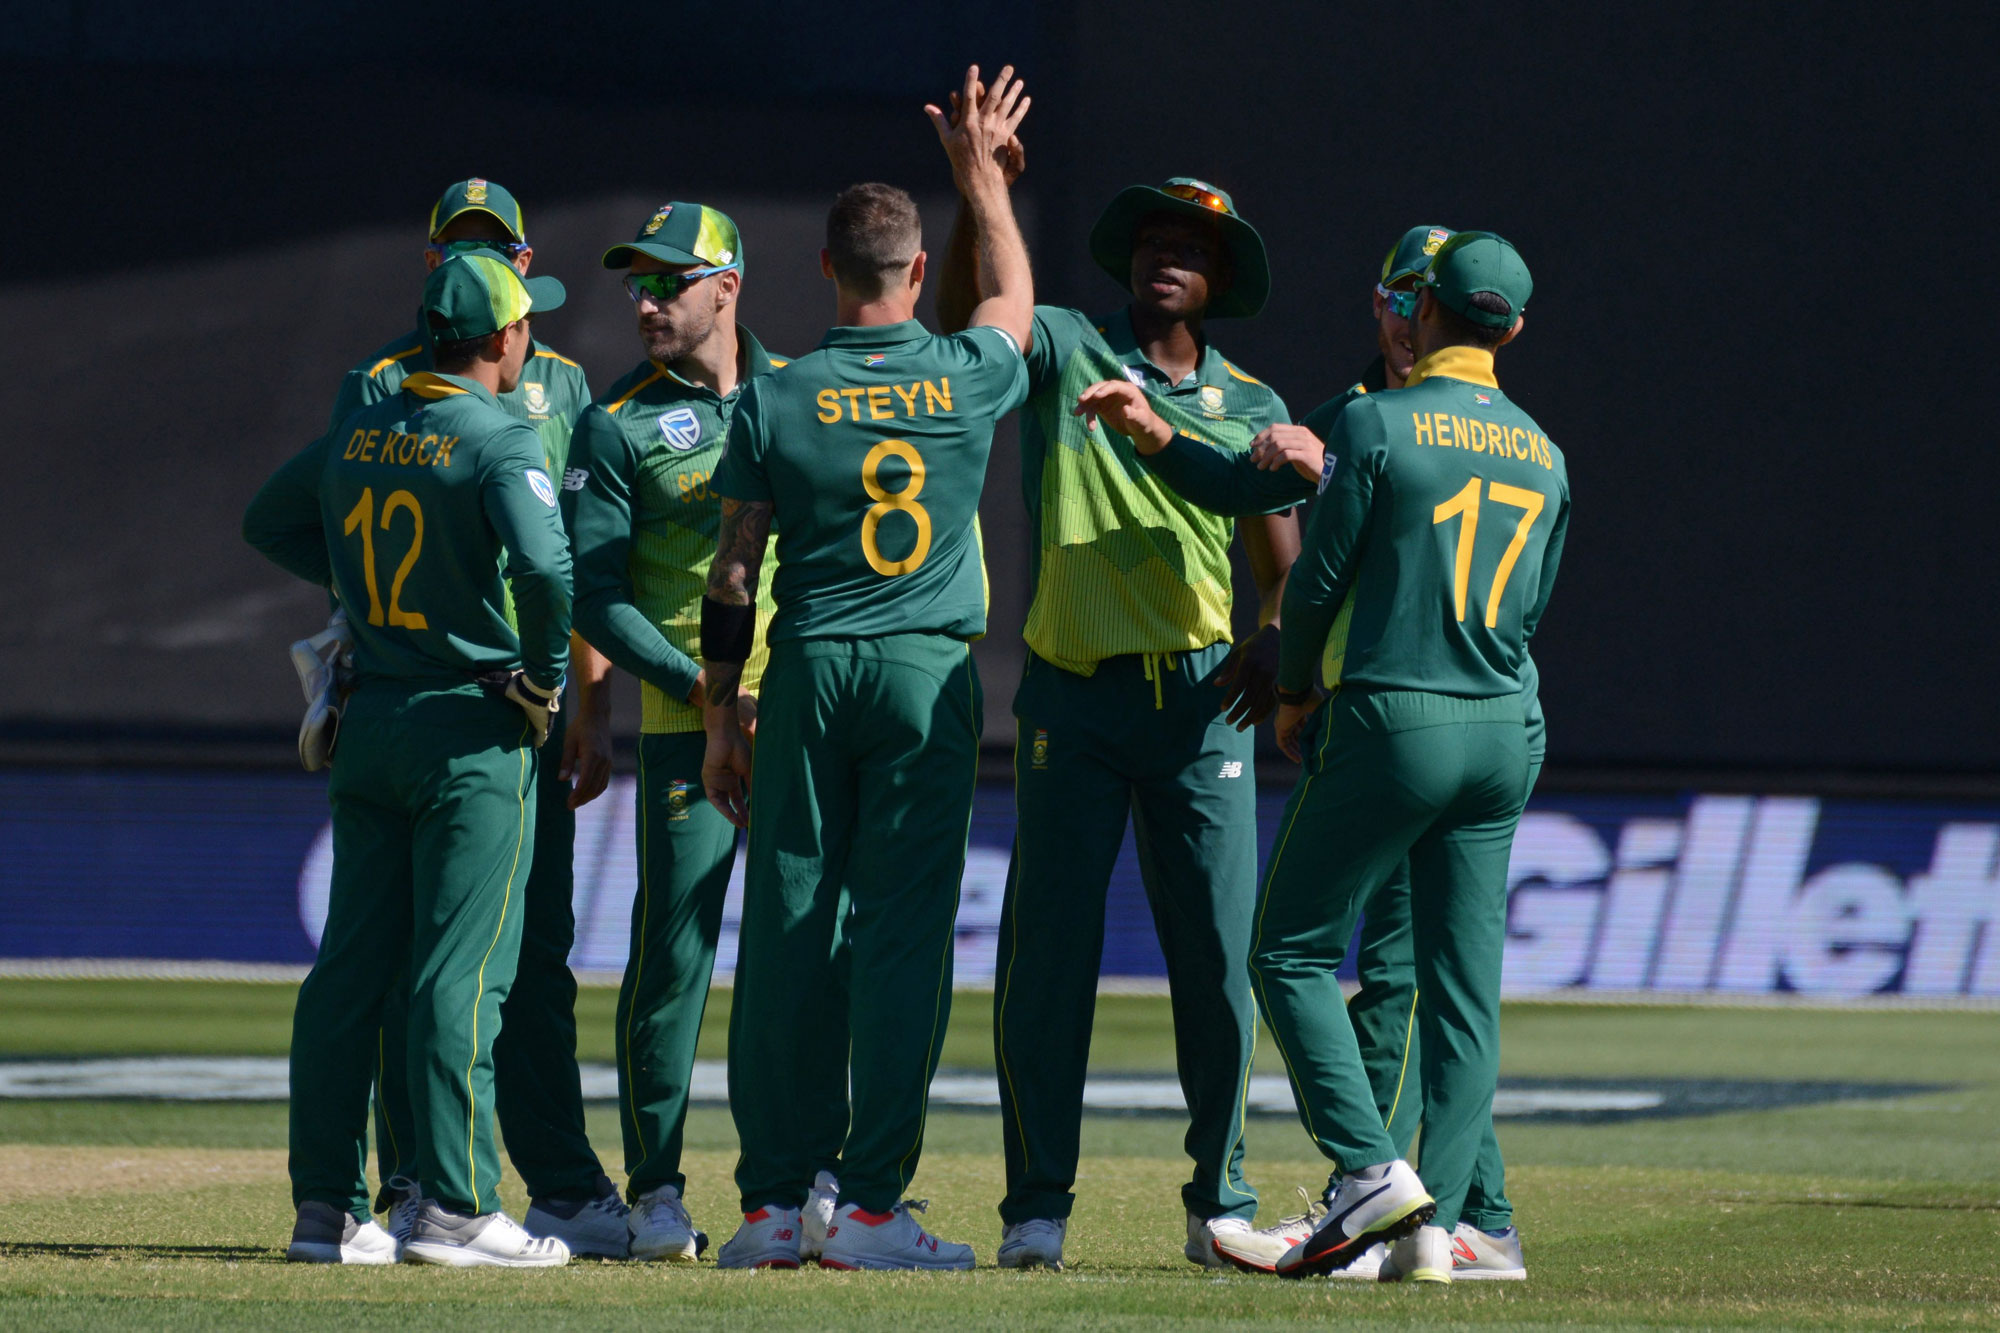 South African bowler Dale Steyn (C) celebrates with teammates after bowling out Australian batsman Pat Cummins during the second one day international cricket match between Australia and South Africa at the Adelaide Oval in Adelaide on November 9, 2018. (